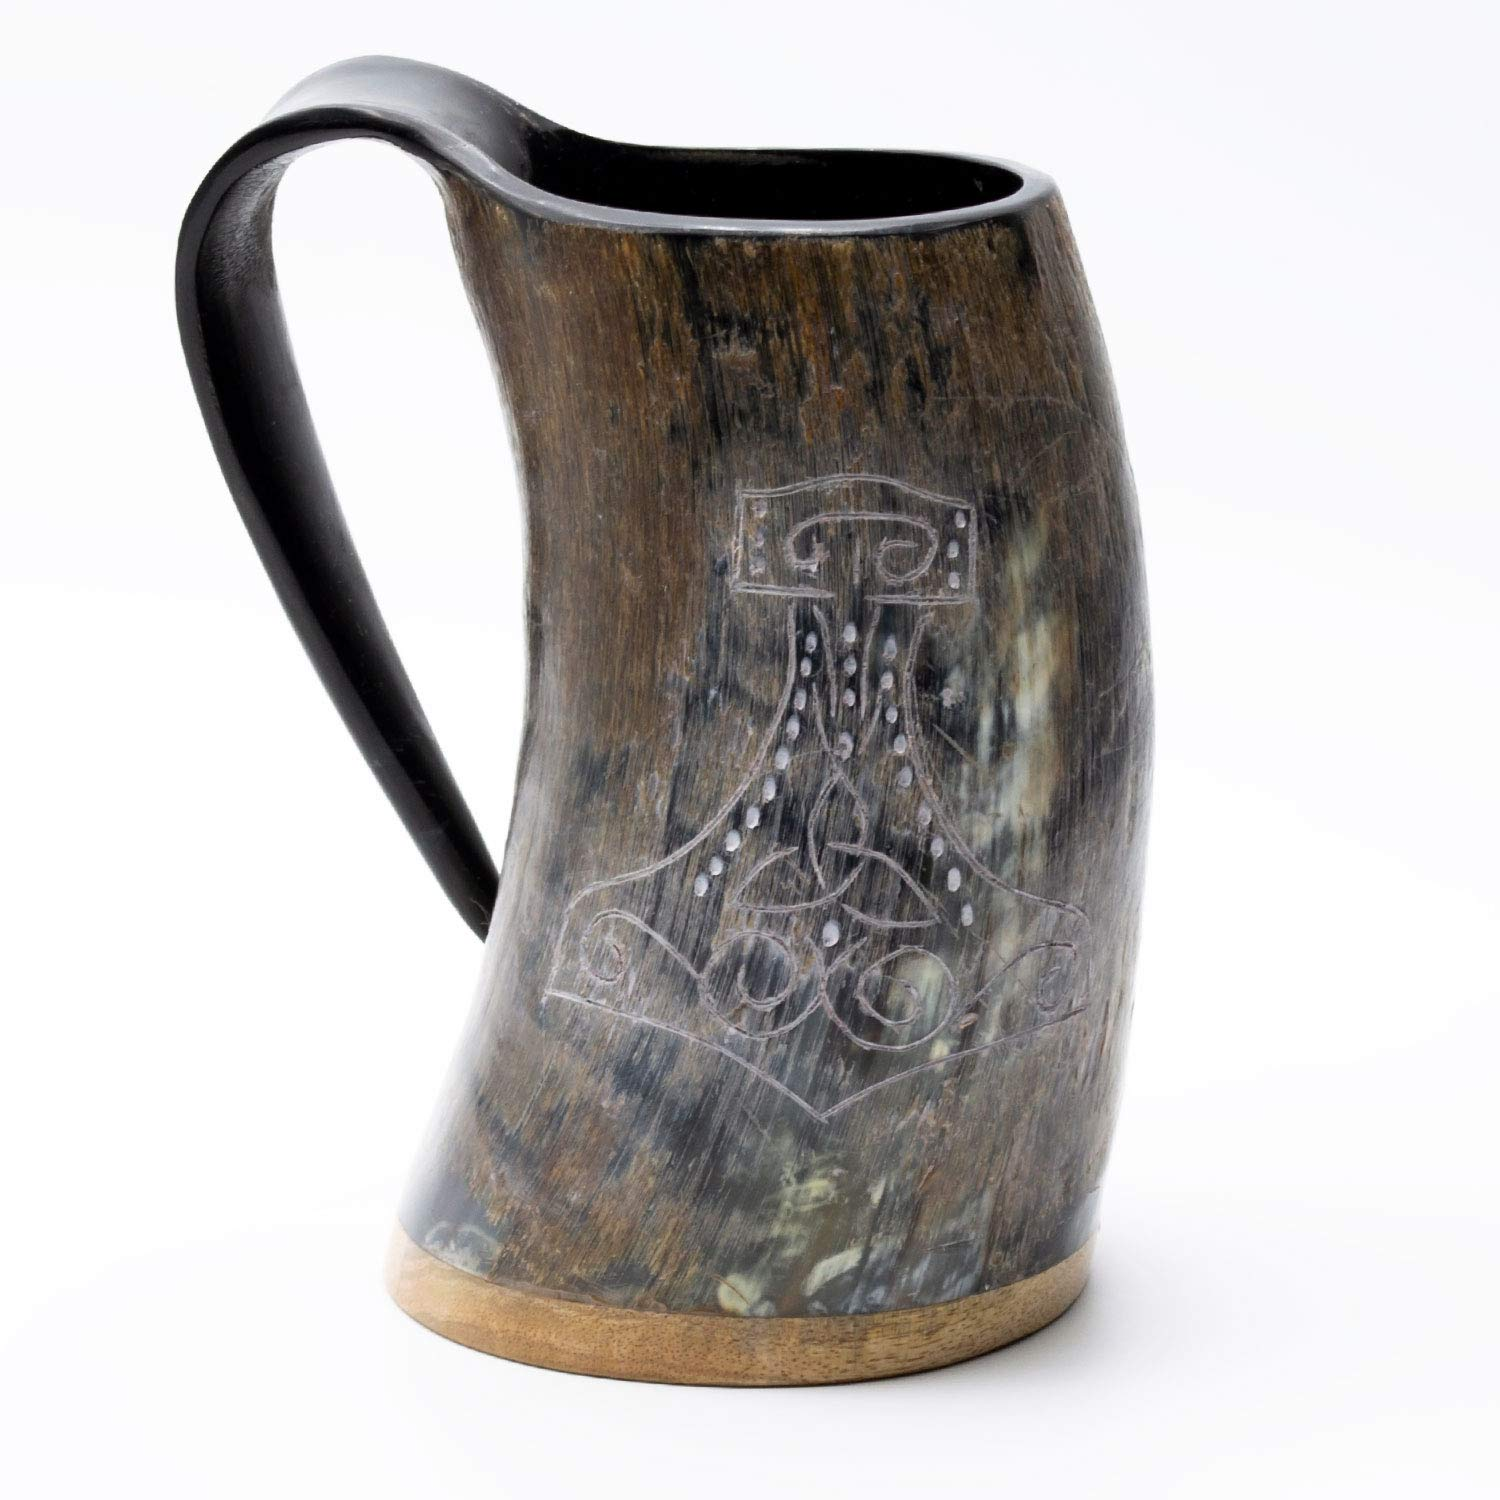 Norse Tradesman Genuine Viking Drinking Horn Mug - 100% Natural Beer Horn Tankard w/Thor's Hammer Engraving |''The Mjolnir'', Unpolished, X-Large